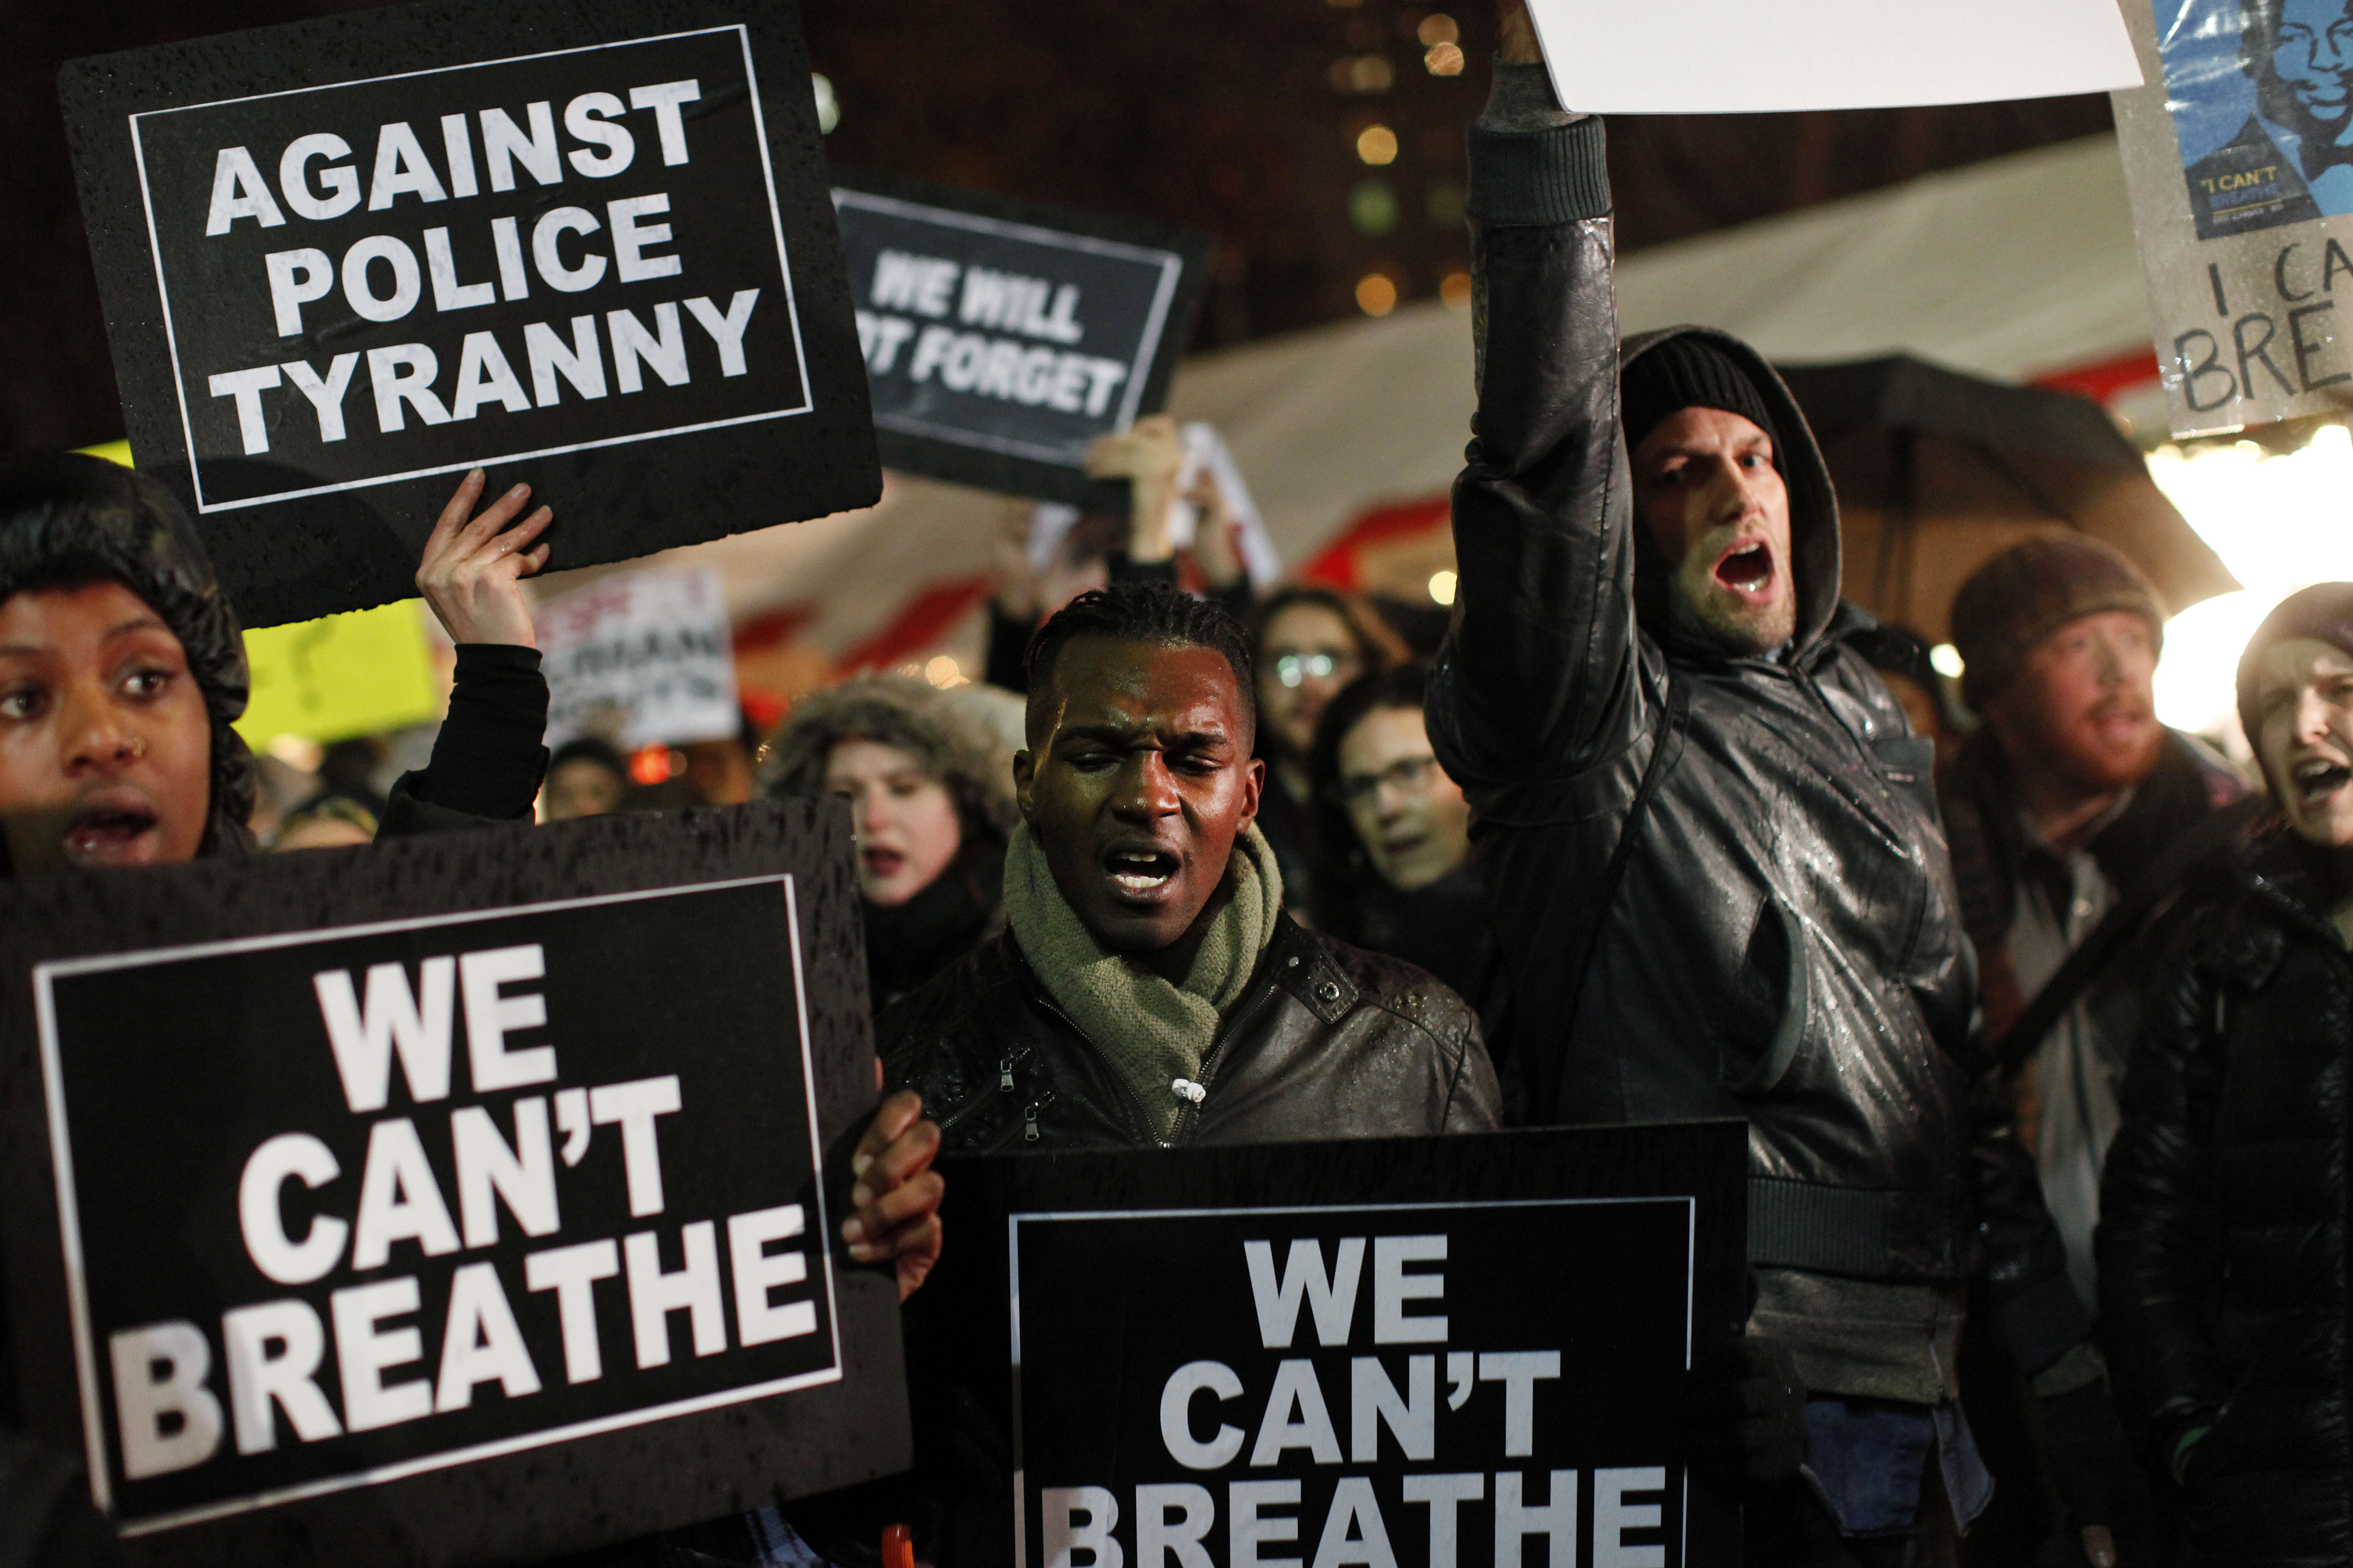 Protesters rallying against a grand jury's decision not to indict the police officer involved in the death of Eric Garner gather in Columbus Circle, Friday, Dec. 5, 2014, in New York.